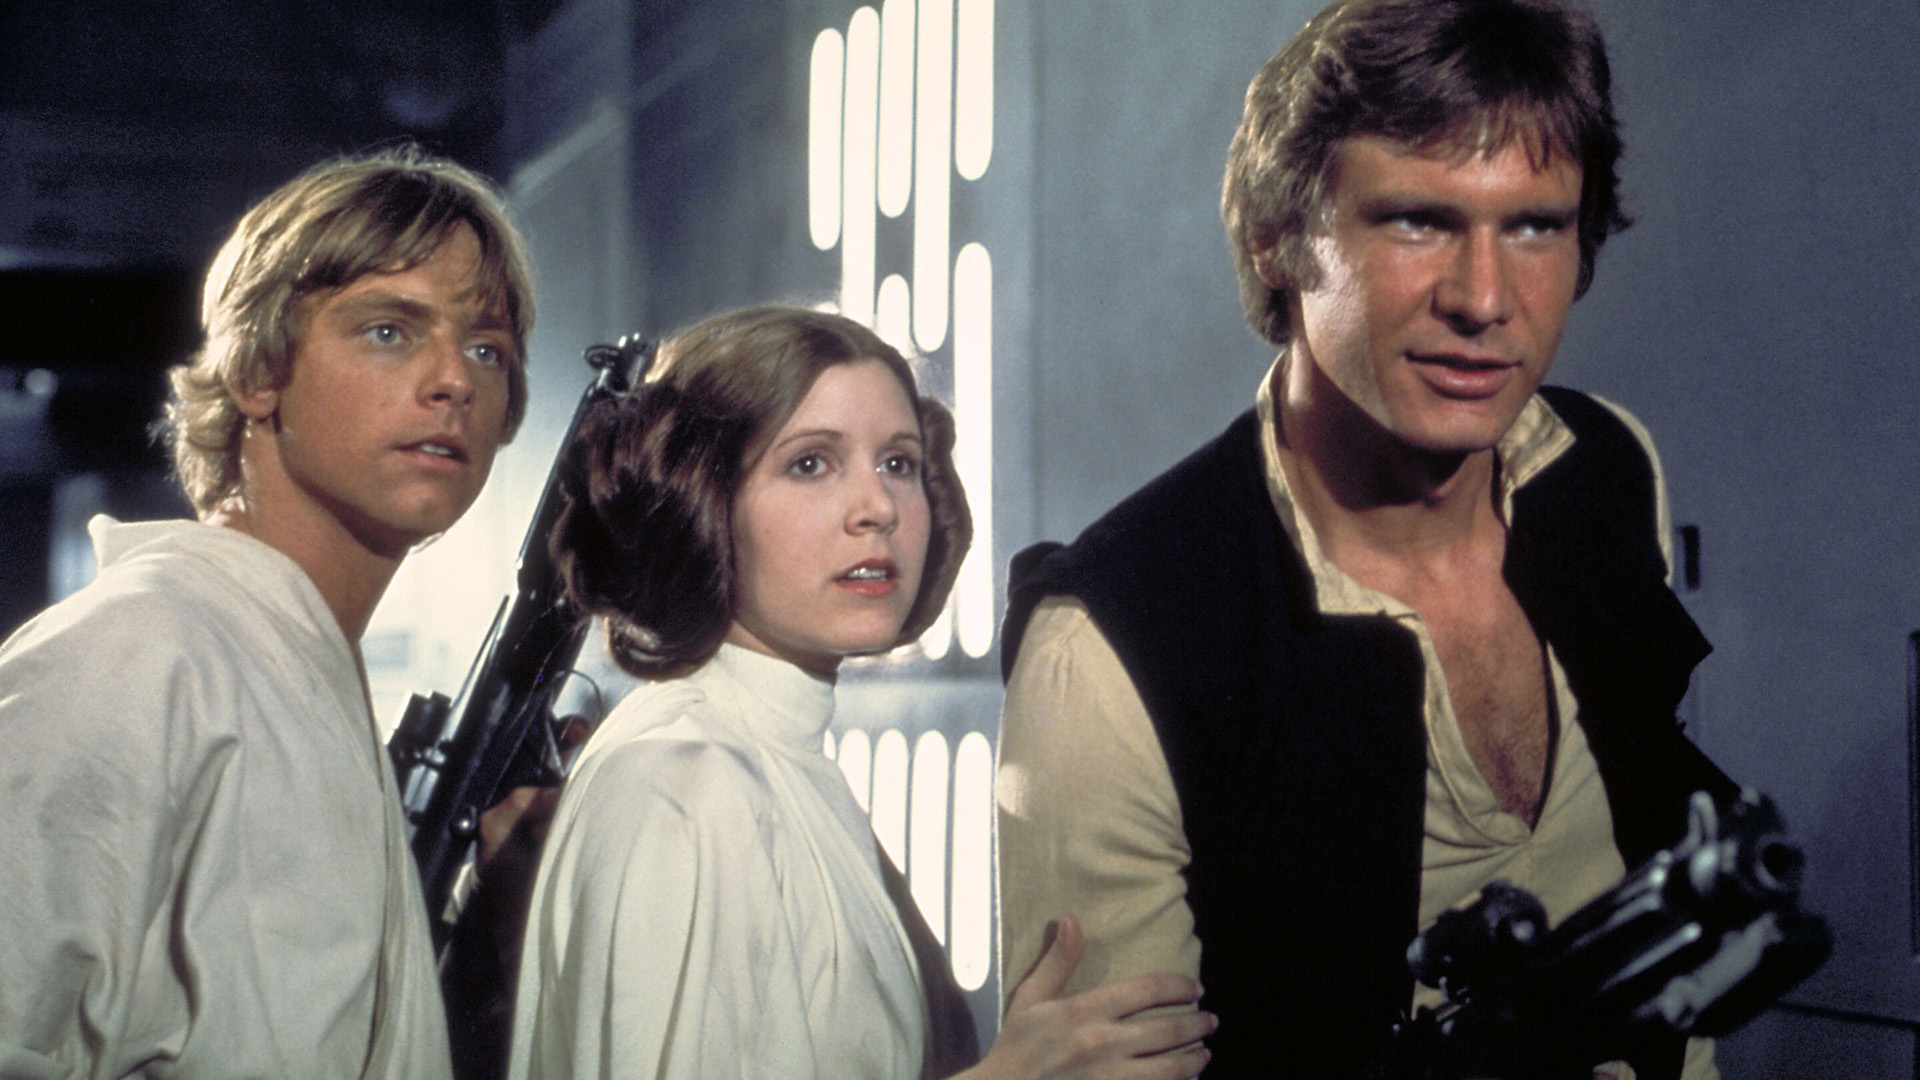 star wars episode vii cast reveal makes us feel things